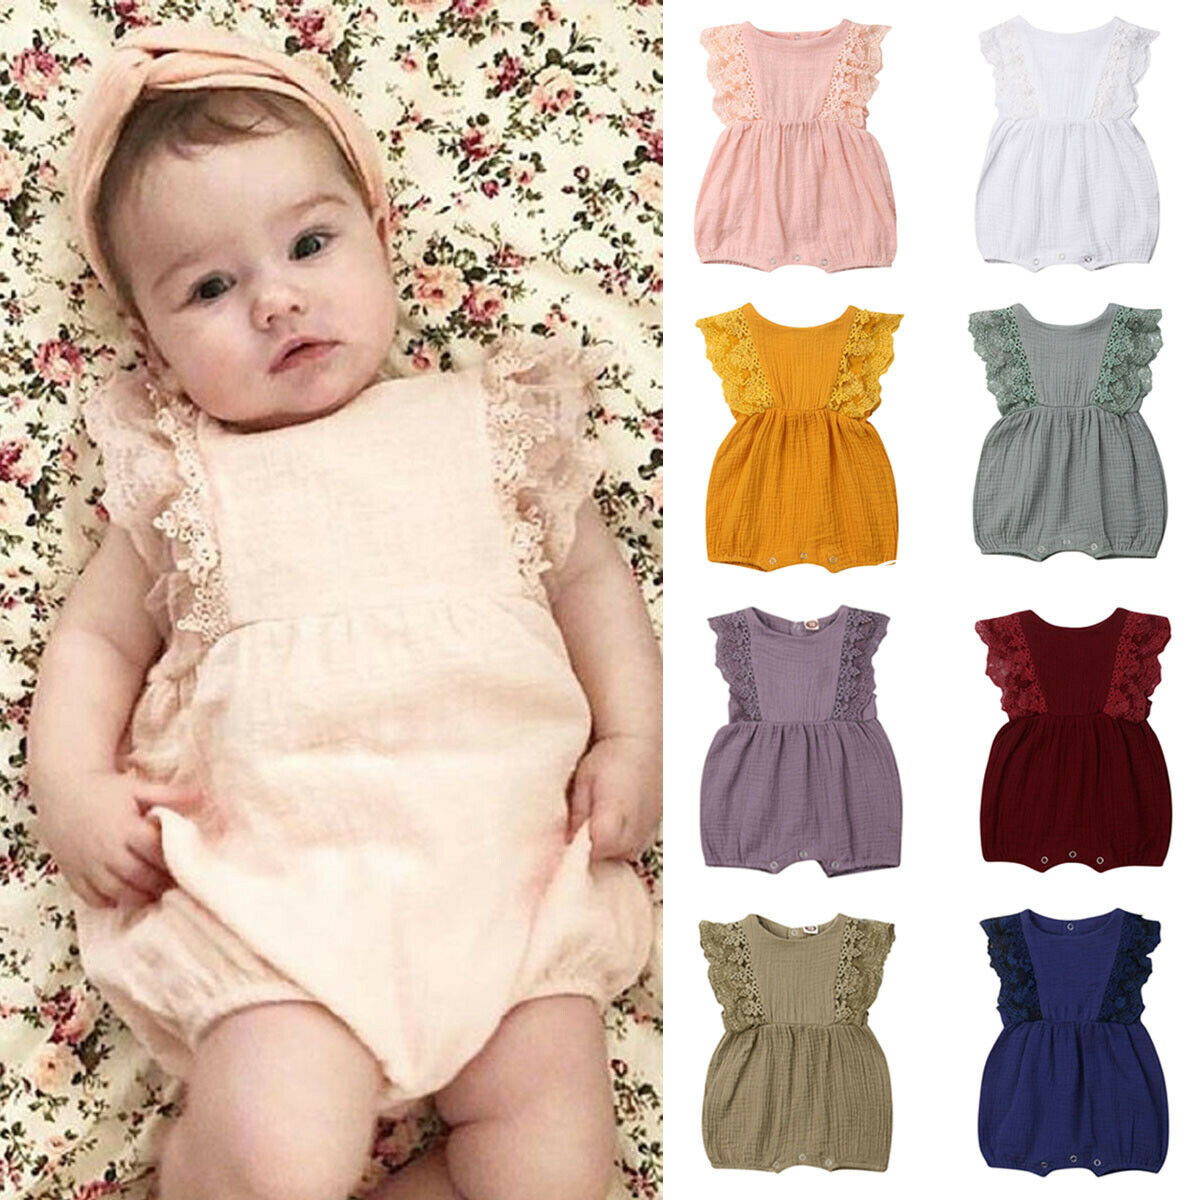 Newborn Infant Baby Girl Lace Sleeve Linen Romper Jumpsuit Sleeveless Playsuit Outfit with Headband Summer Clothes